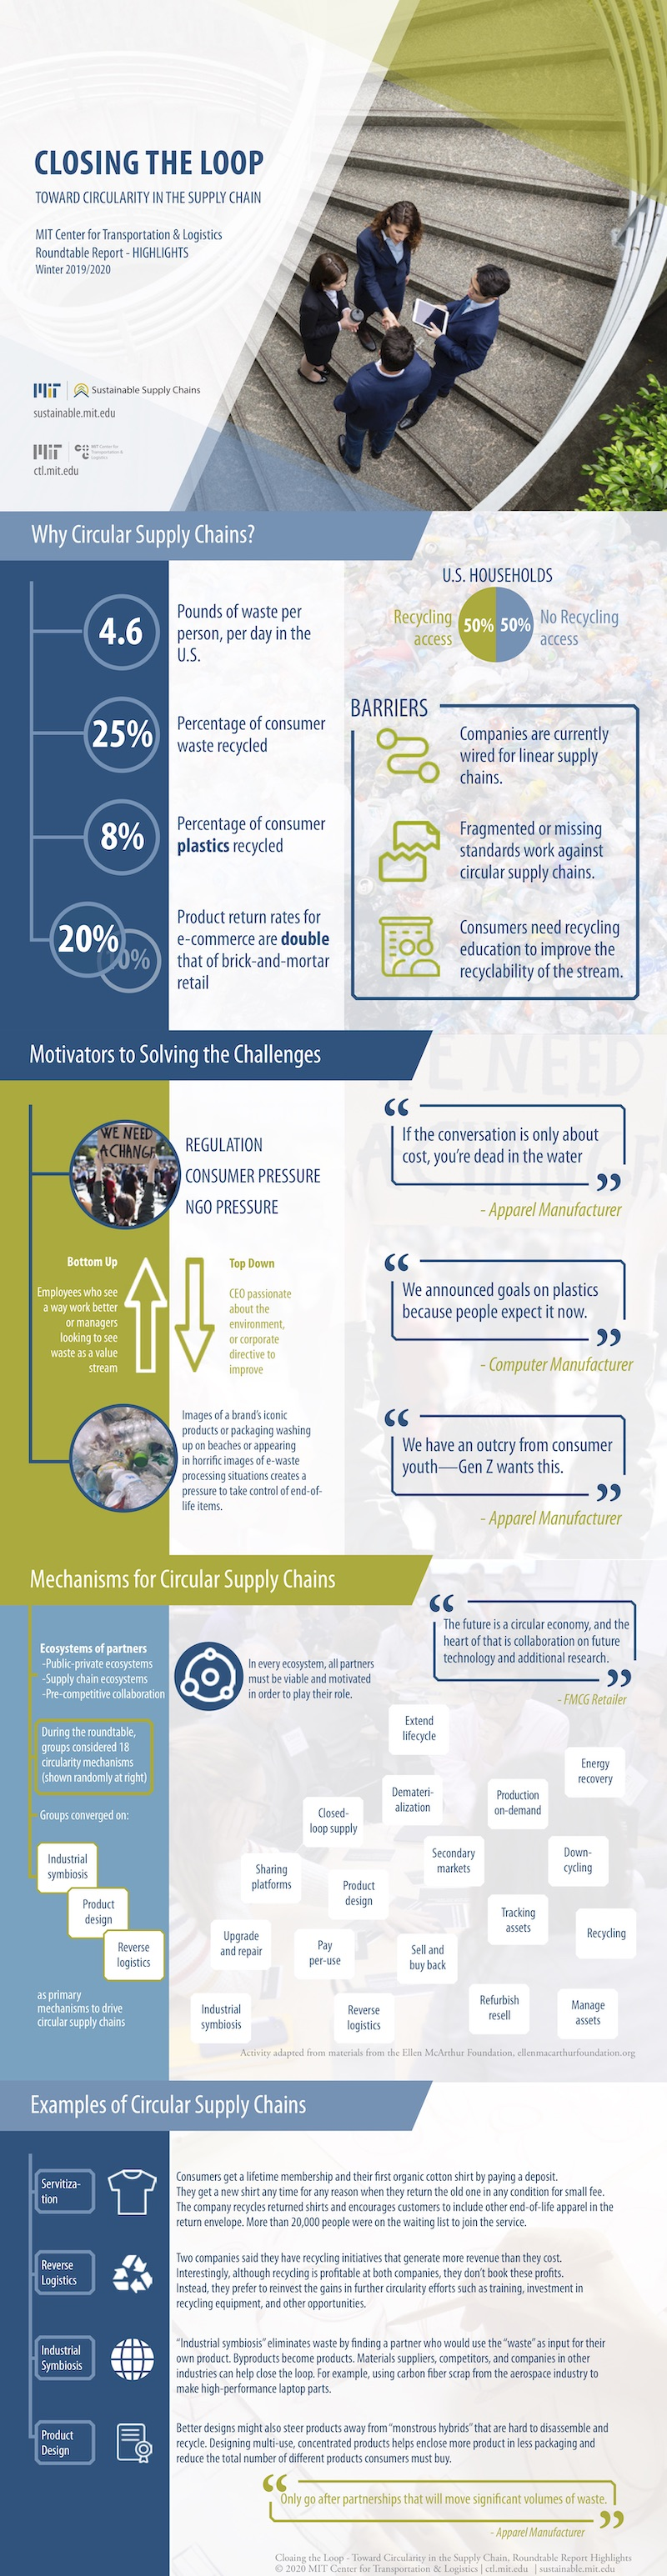 Circular Supply Chain roundtable infographic MIT CTL